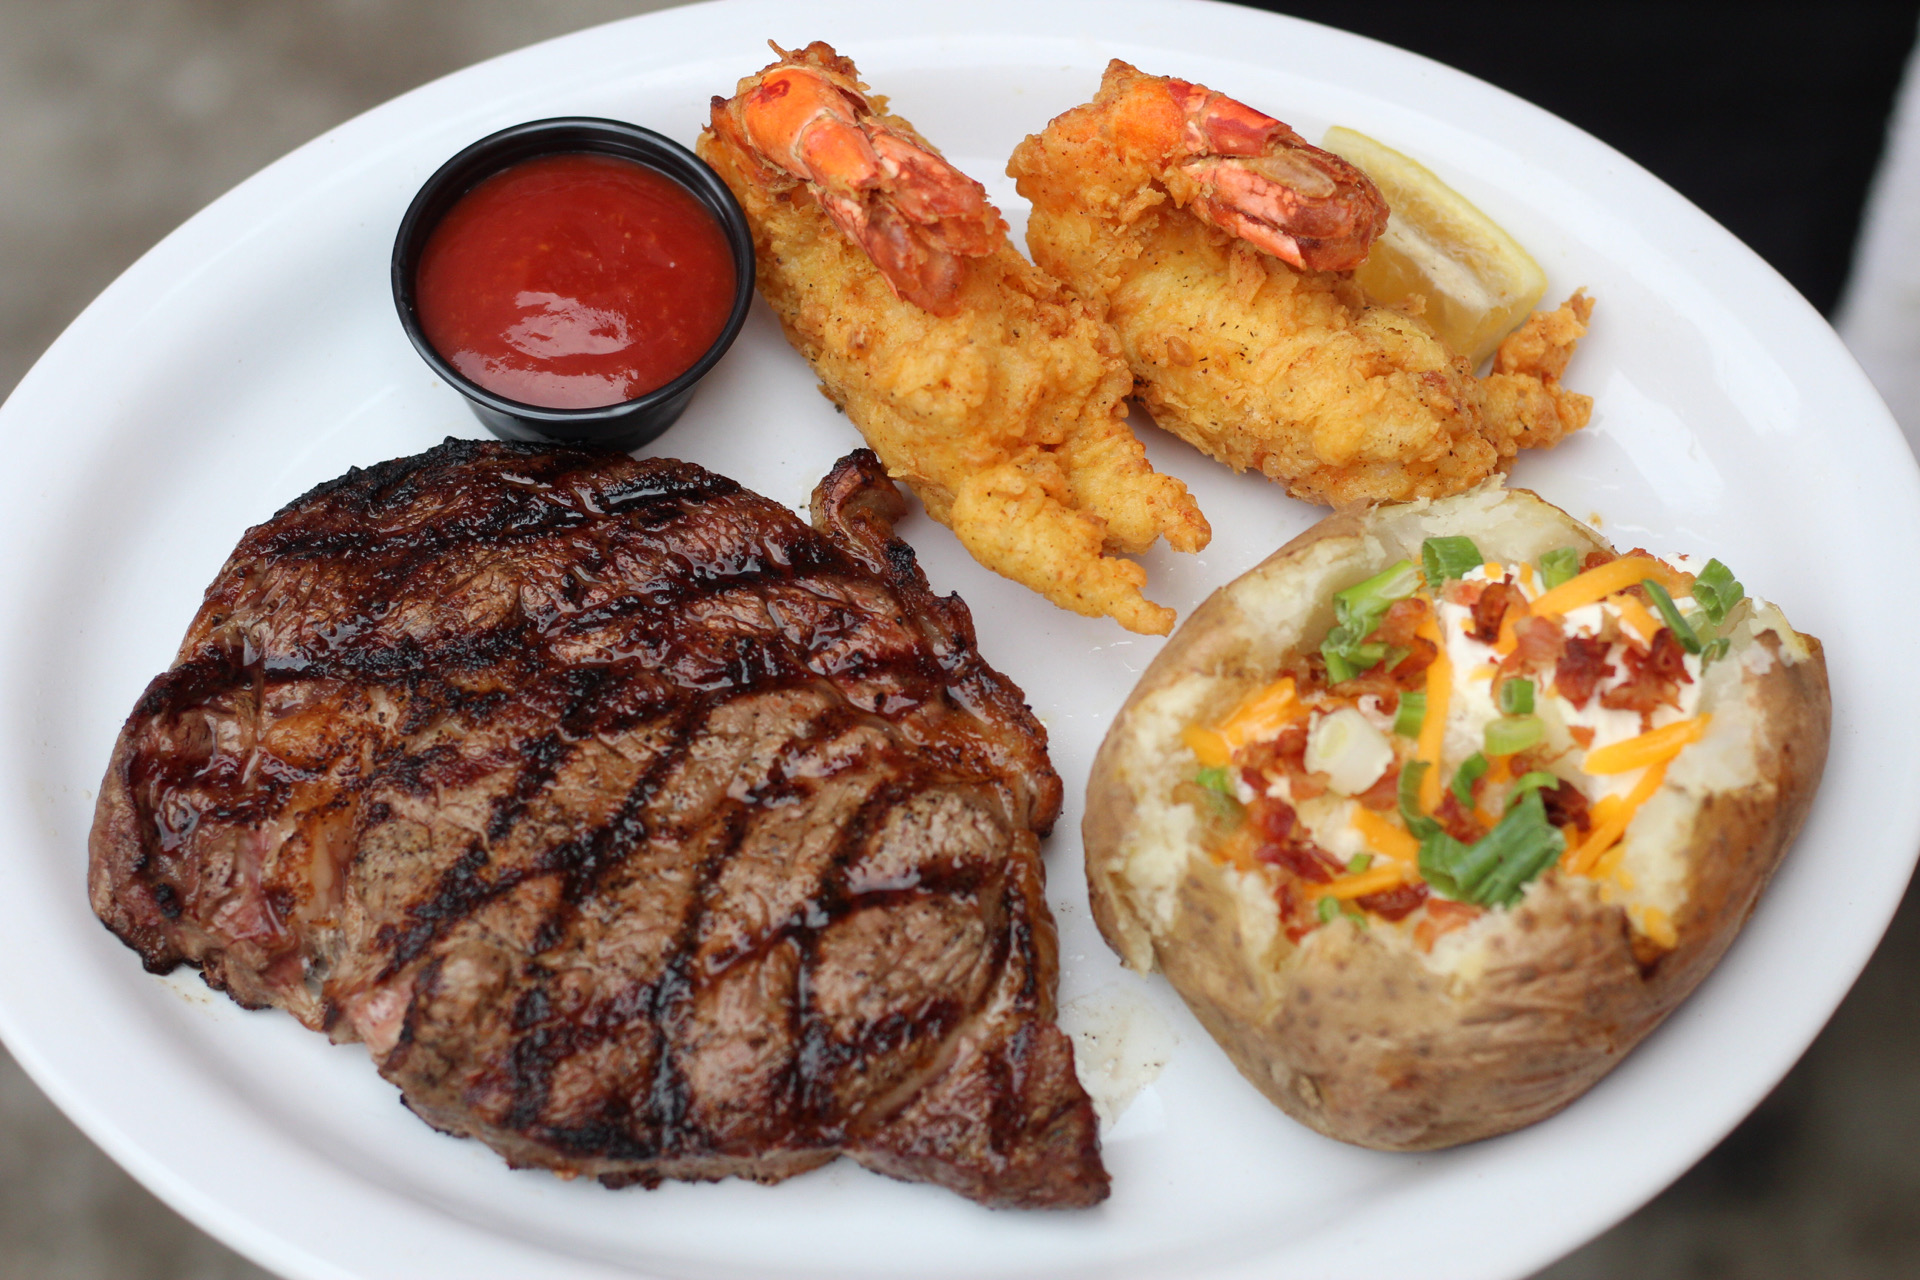 Ribeye, Jumbo Prawns, and a Loaded Baked Potato